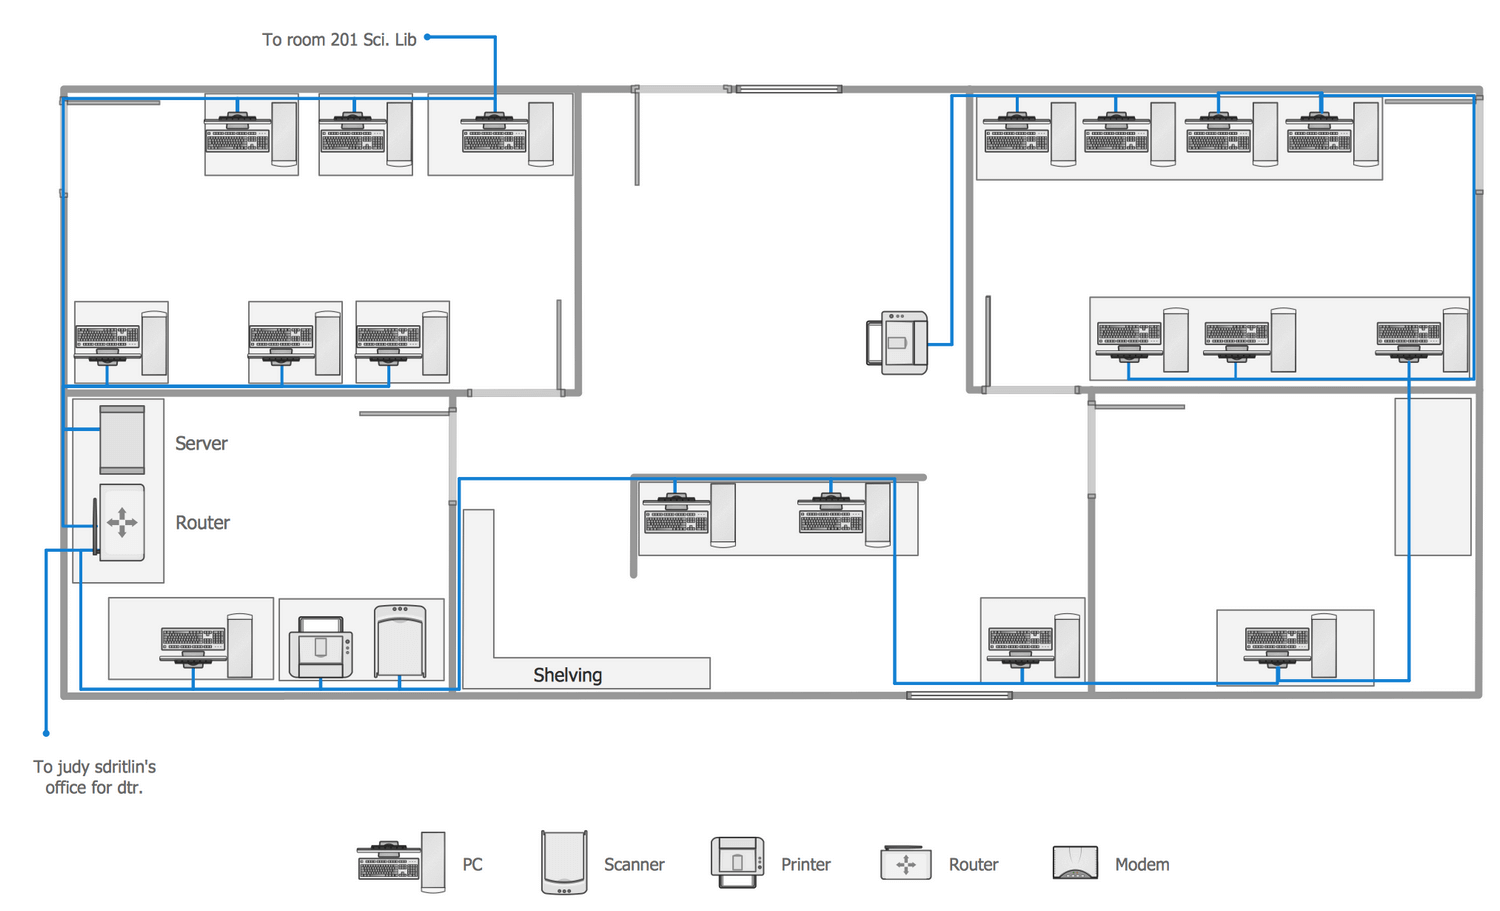 Building Symbols For Cabling Diagram Network Layout Floor Plans Solution Conceptdraw Com